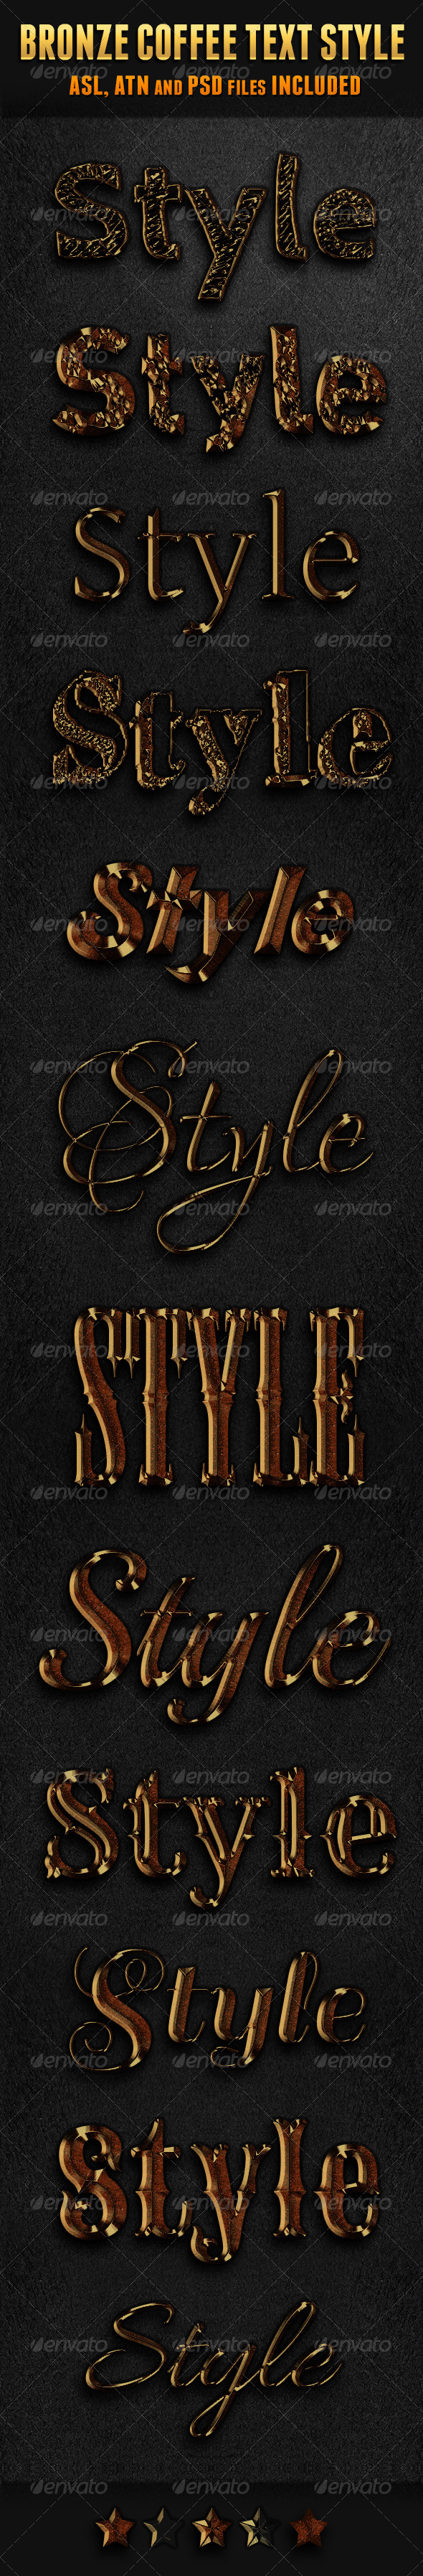 GraphicRiver Bronze Coffee Photoshop Text Style 5928216